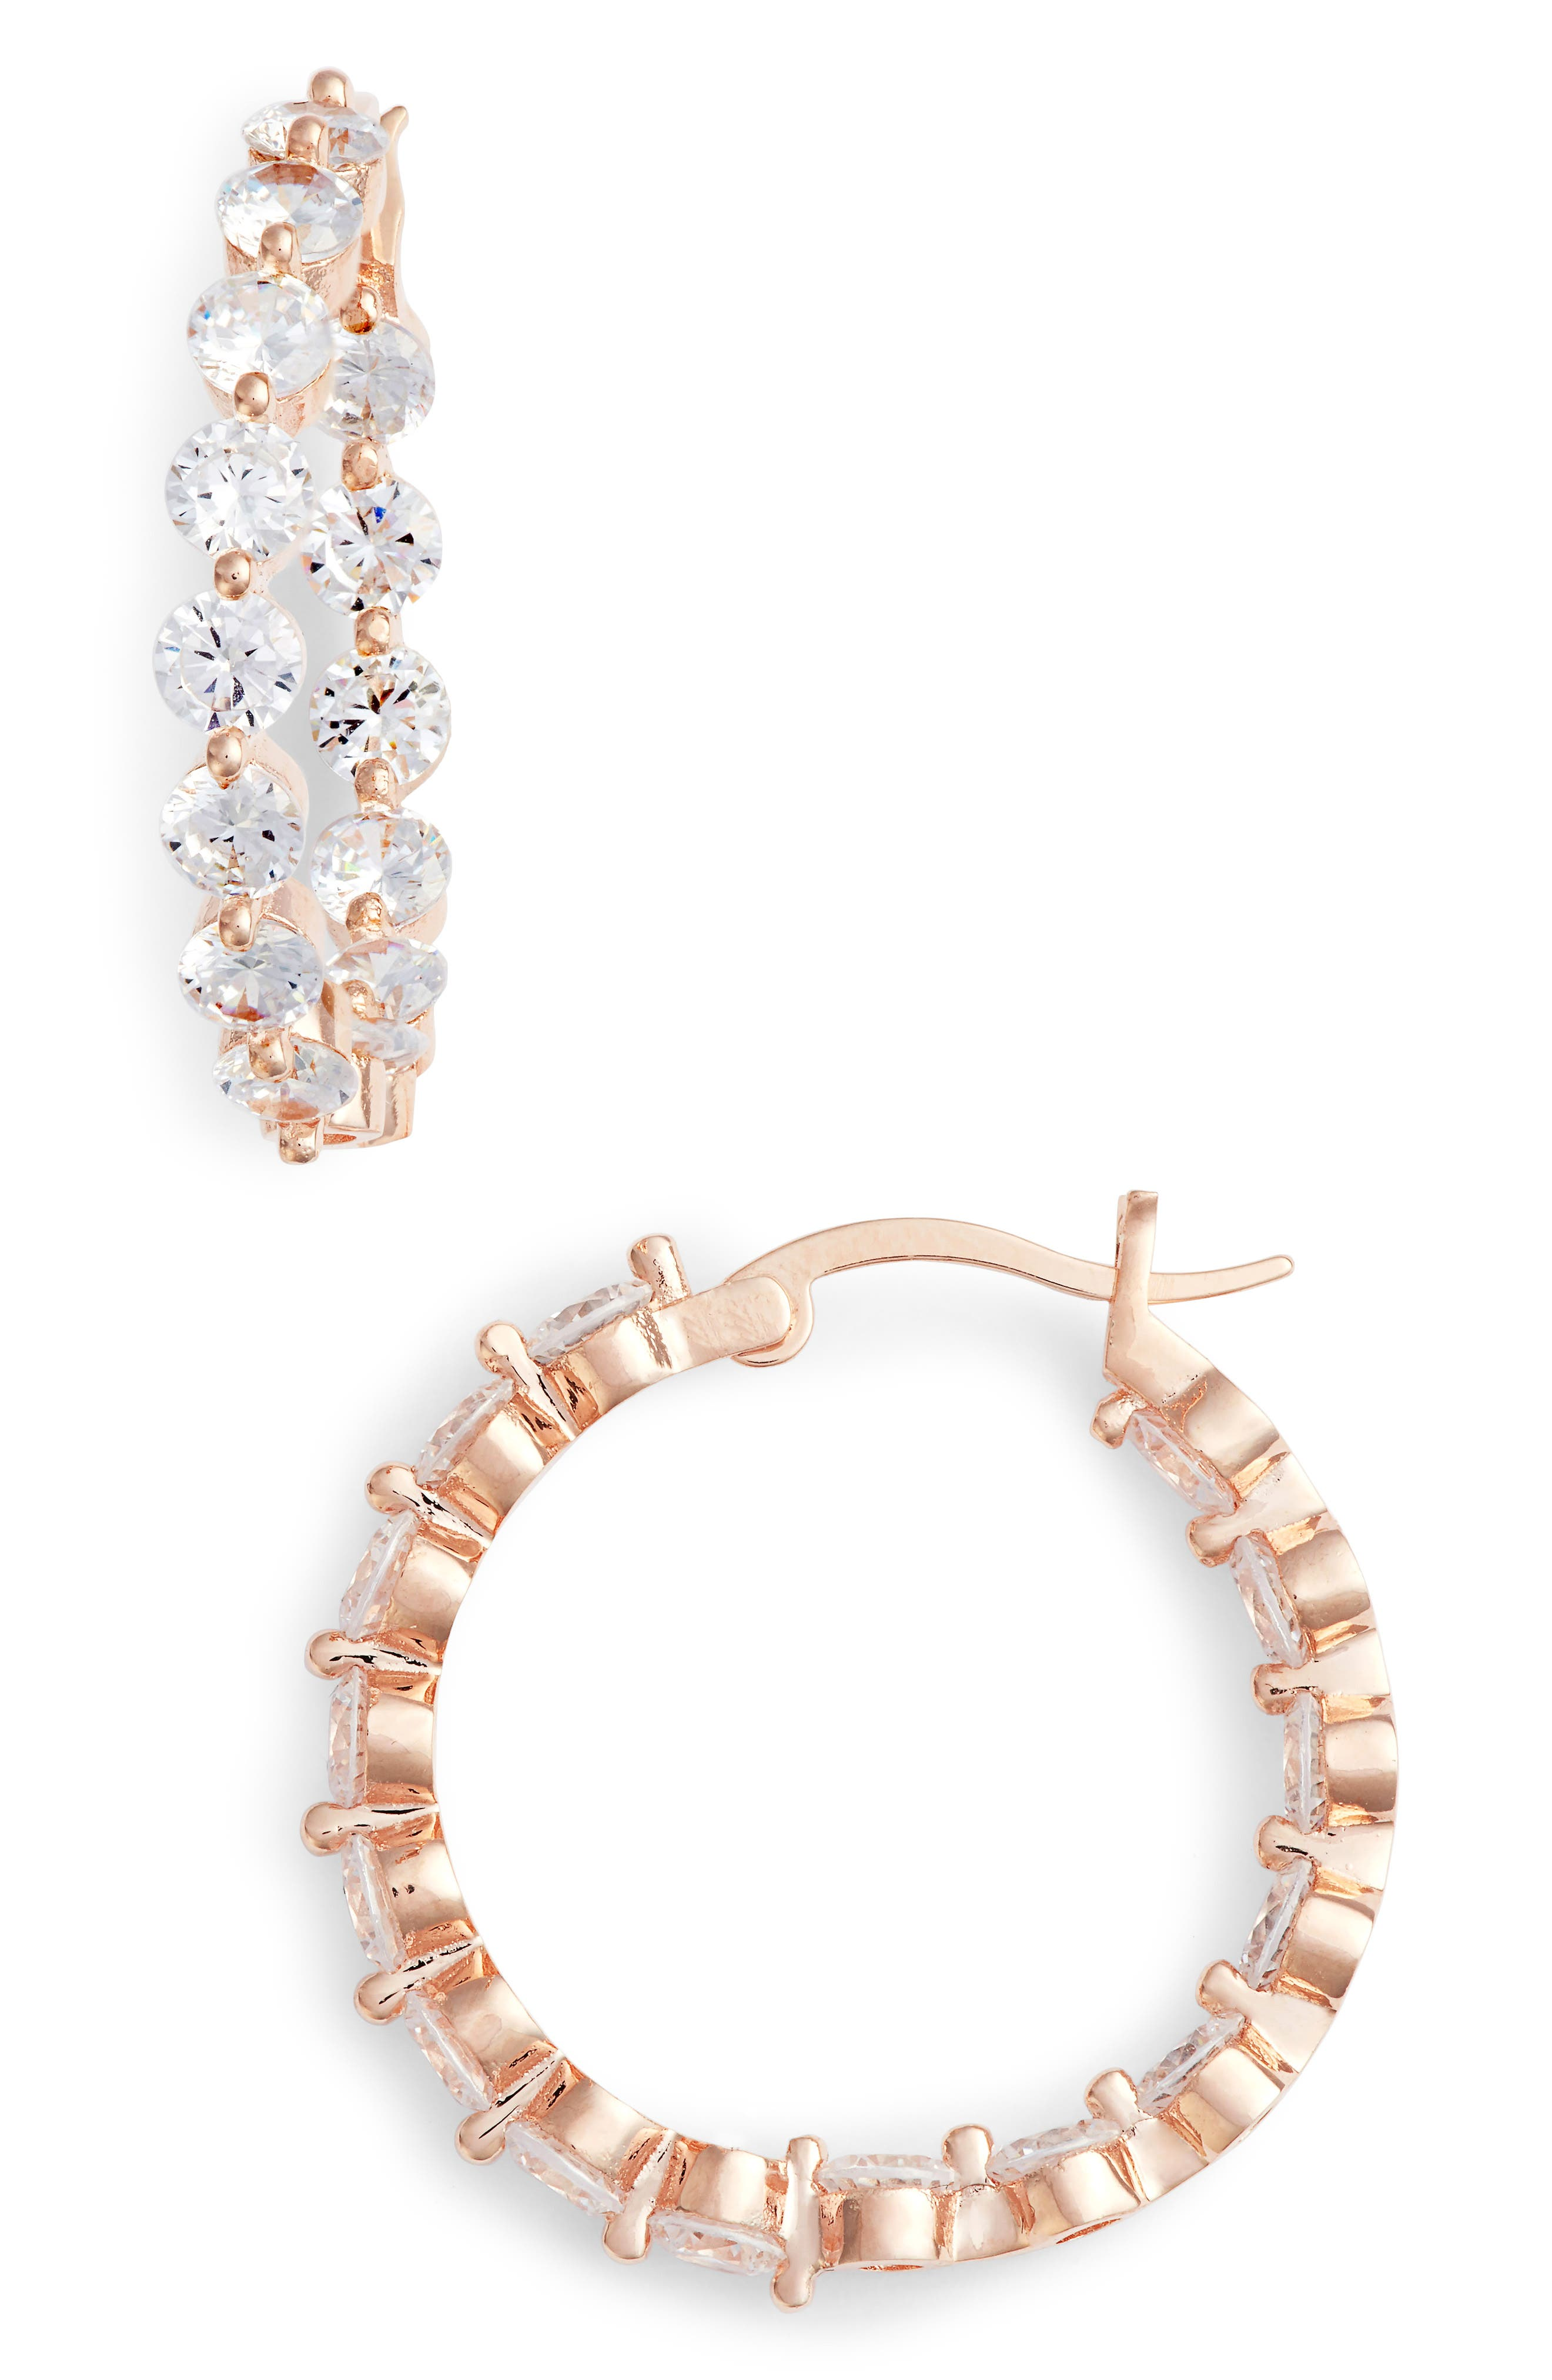 Medium Cubic Zirconia Hoop Earrings,                             Main thumbnail 1, color,                             ROSE GOLD/ WHITE CZ